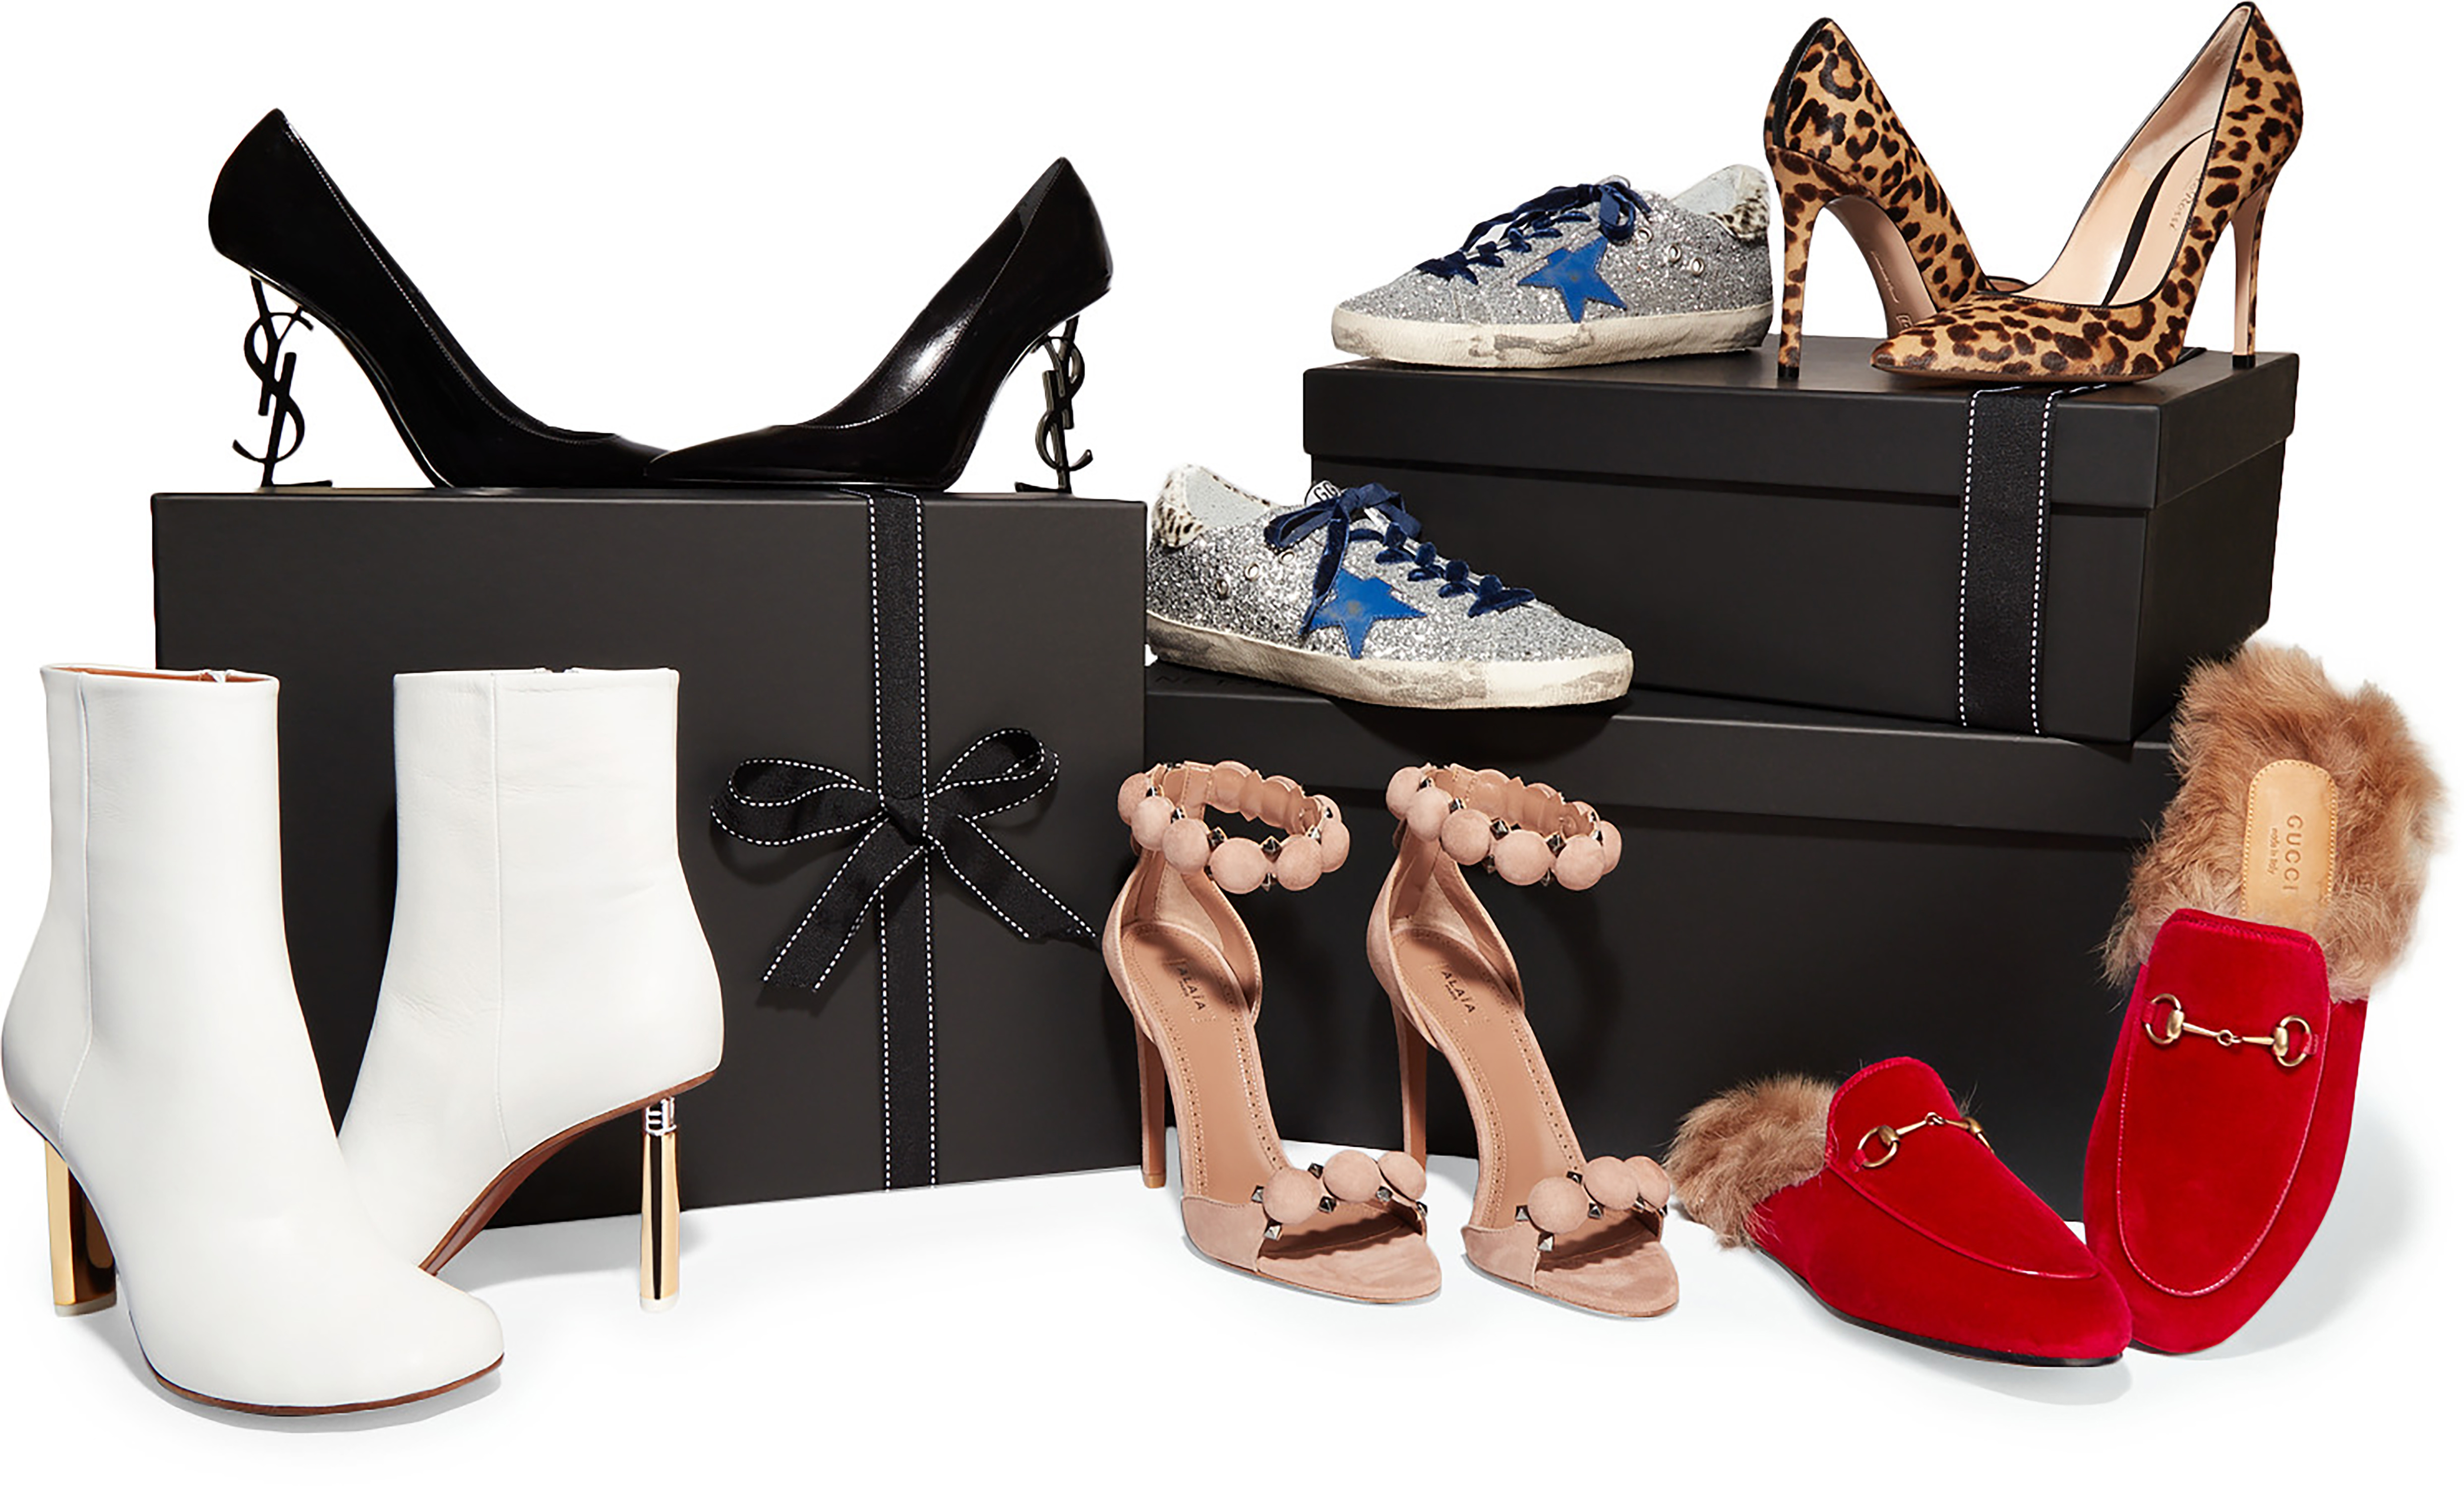 Net-a-Porter.com launches holiday kits and fantasy gifts